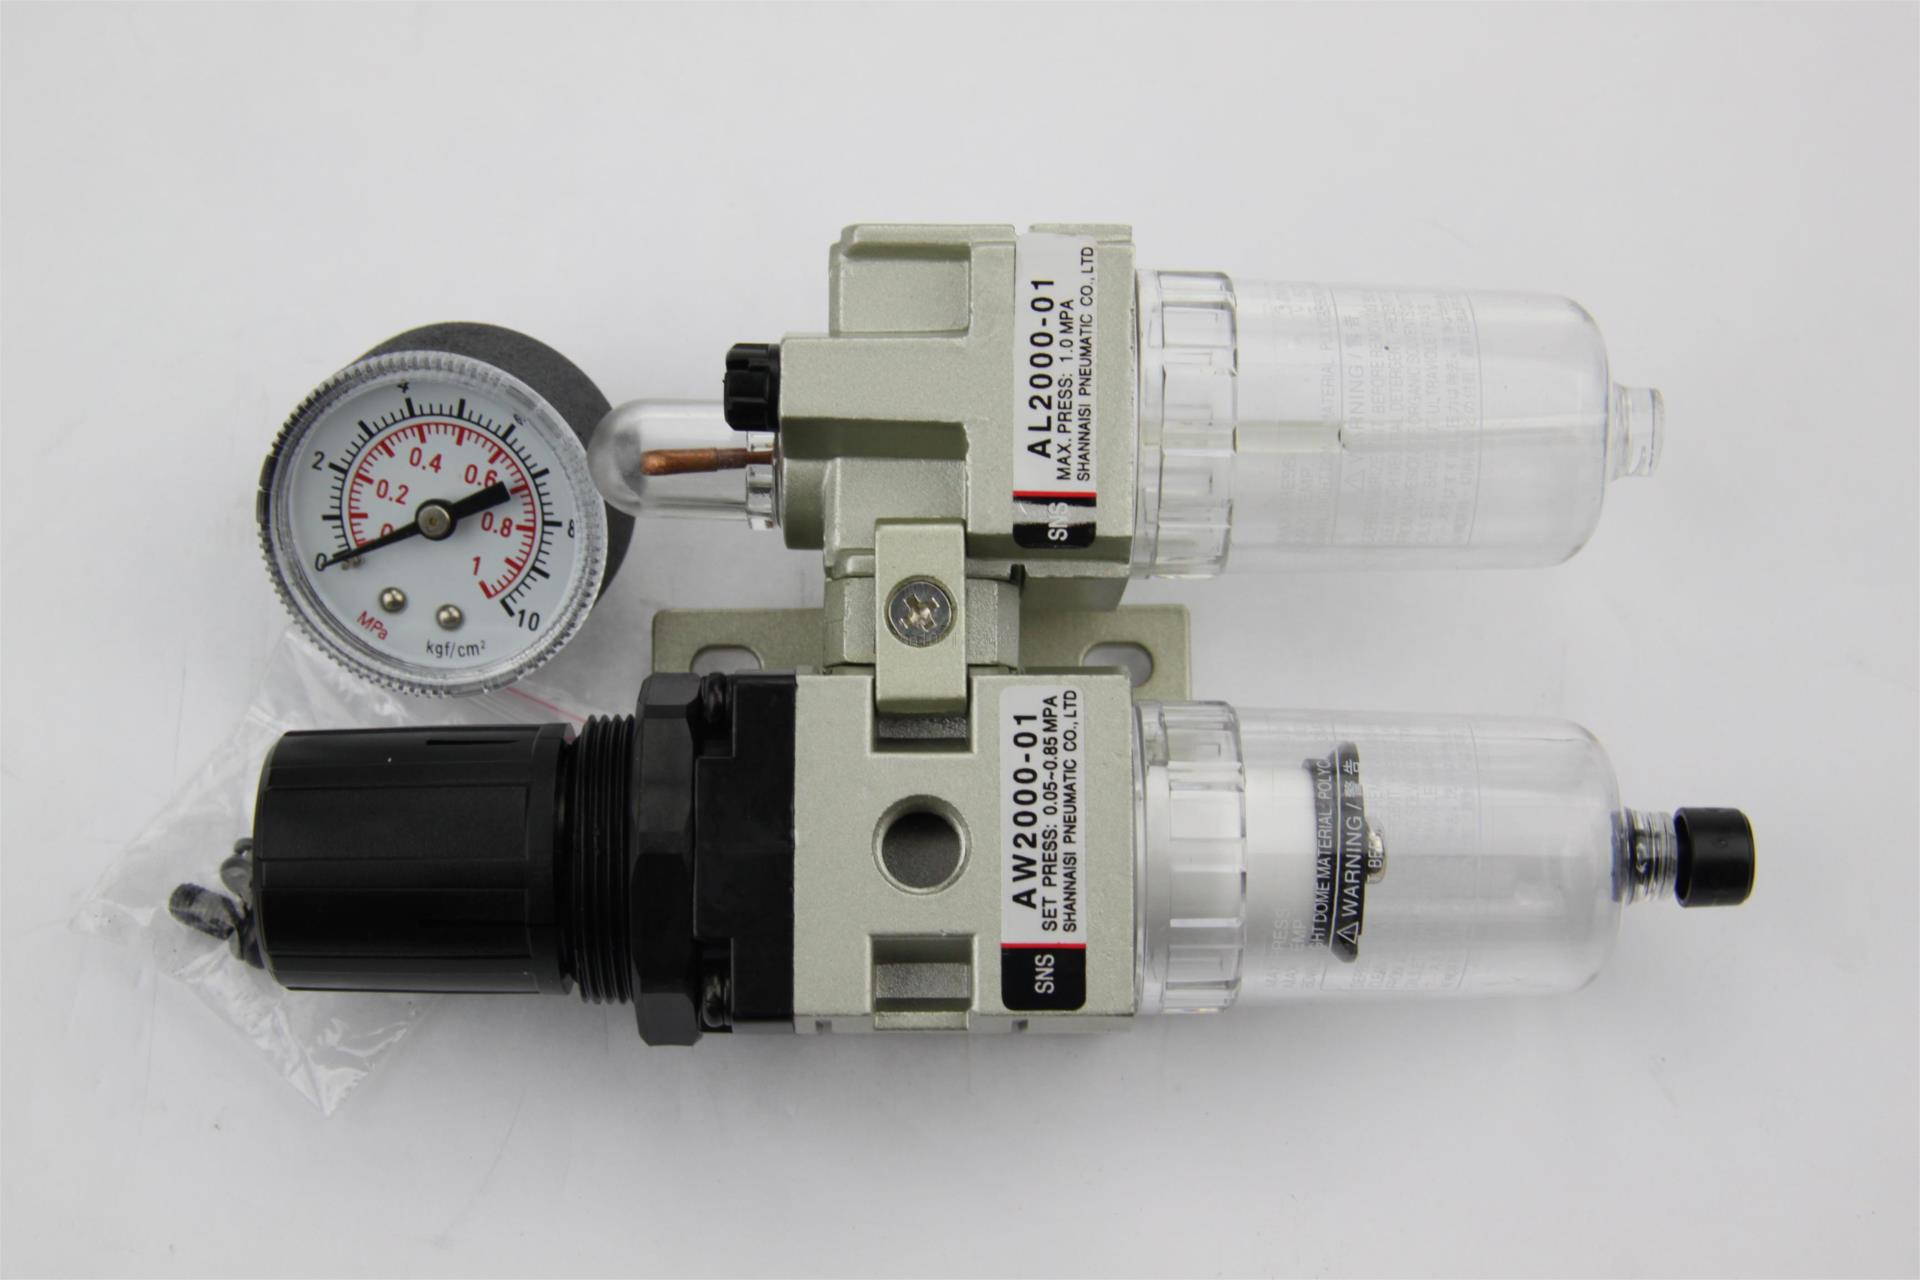 AC2010-01 1/8PT SMC manual drain type air filter SNS pneumatic components  gas source processor  two joint oil-water separator sy5120 3dze 01 sy5120 4dze 01 sy5120 5dze 01 sy5120 6dze 01 pneumatic components smc solenoid valve